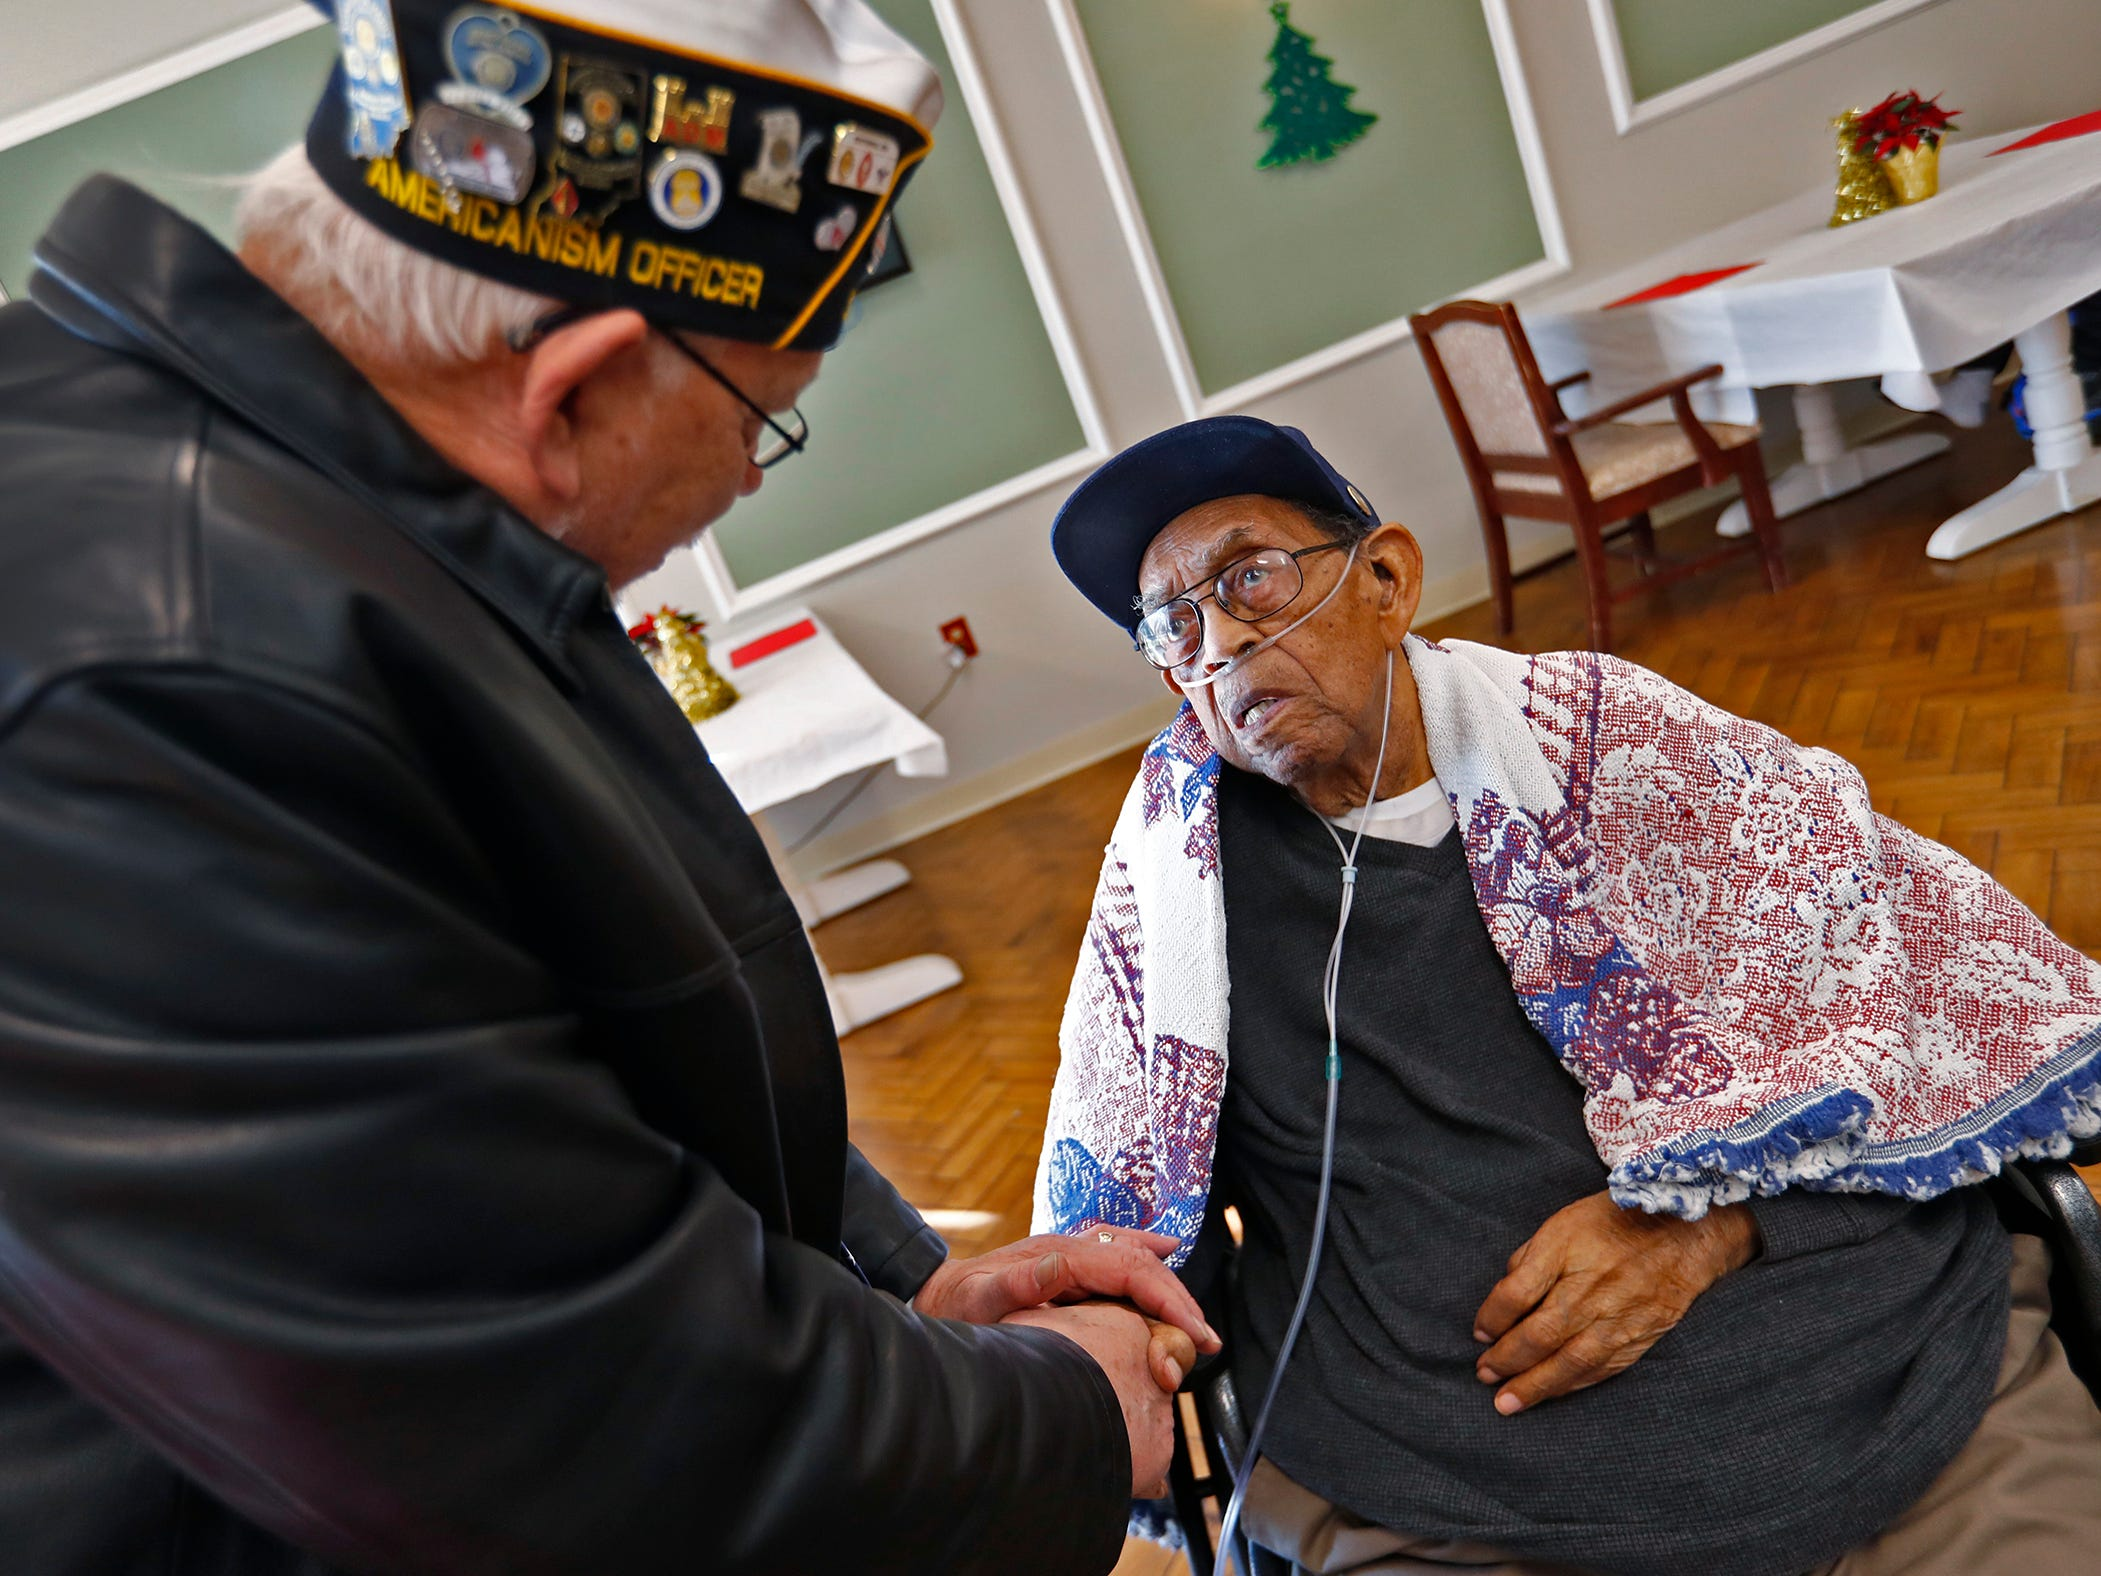 American Legion's 11th District Commander Rees Morgan, left, speaks with Pearl Harbor attack survivor William Harvey, right, at the Alpha Home where he lives, Friday, Dec. 7, 2018.  Harvey was unable to attend a Pearl Harbor Day Remembrance at Riverside High School, so several members with The American Legion came to visit him.  The former Heslar Naval Armory, now Riverside High School, used to host the event to remember those who died and to honor those who survived in the Dec. 7, 1941 Japanese attack on Pearl Harbor which plunged the United States into World War II.  This year, the event was brought back.  There was also a 21-gun salute, taps played, and a wreath tossing ceremony on the banks of the White River adjacent to the school.